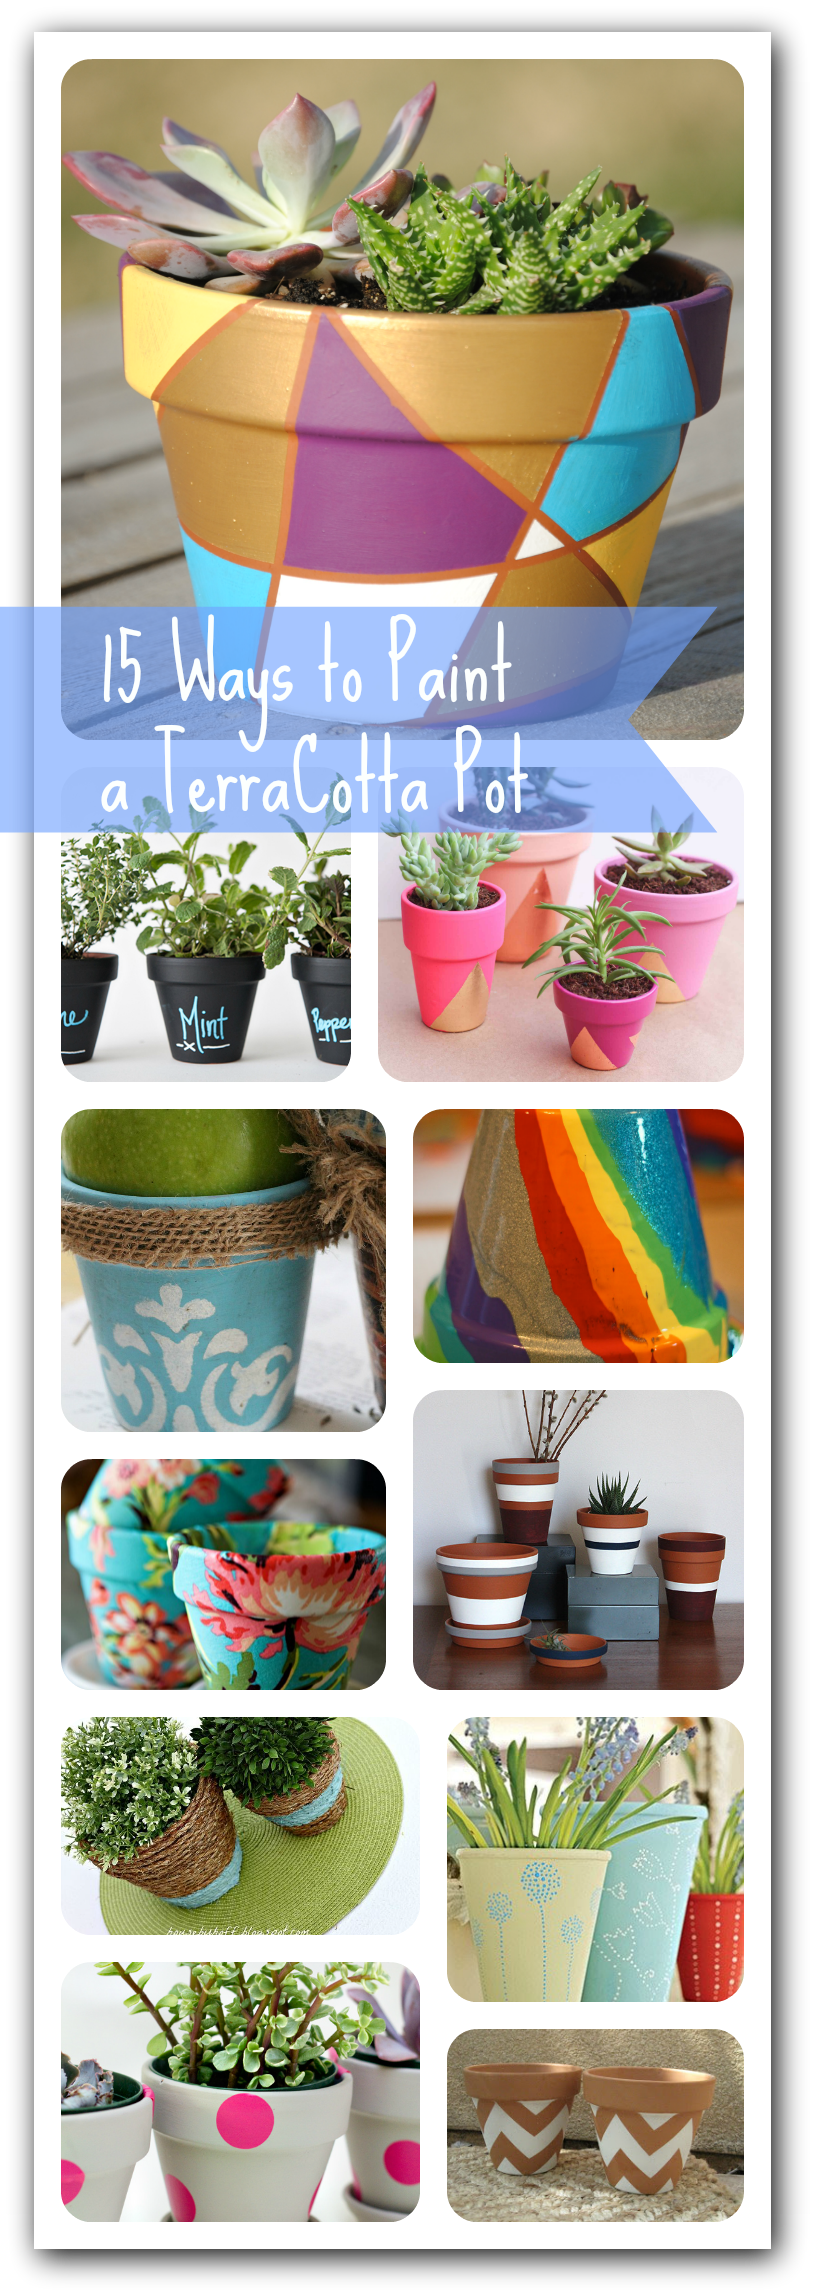 DIY TerraCotta Pot Roundup Ideas To Paint Your Own Pot - Diy two tone painted pots